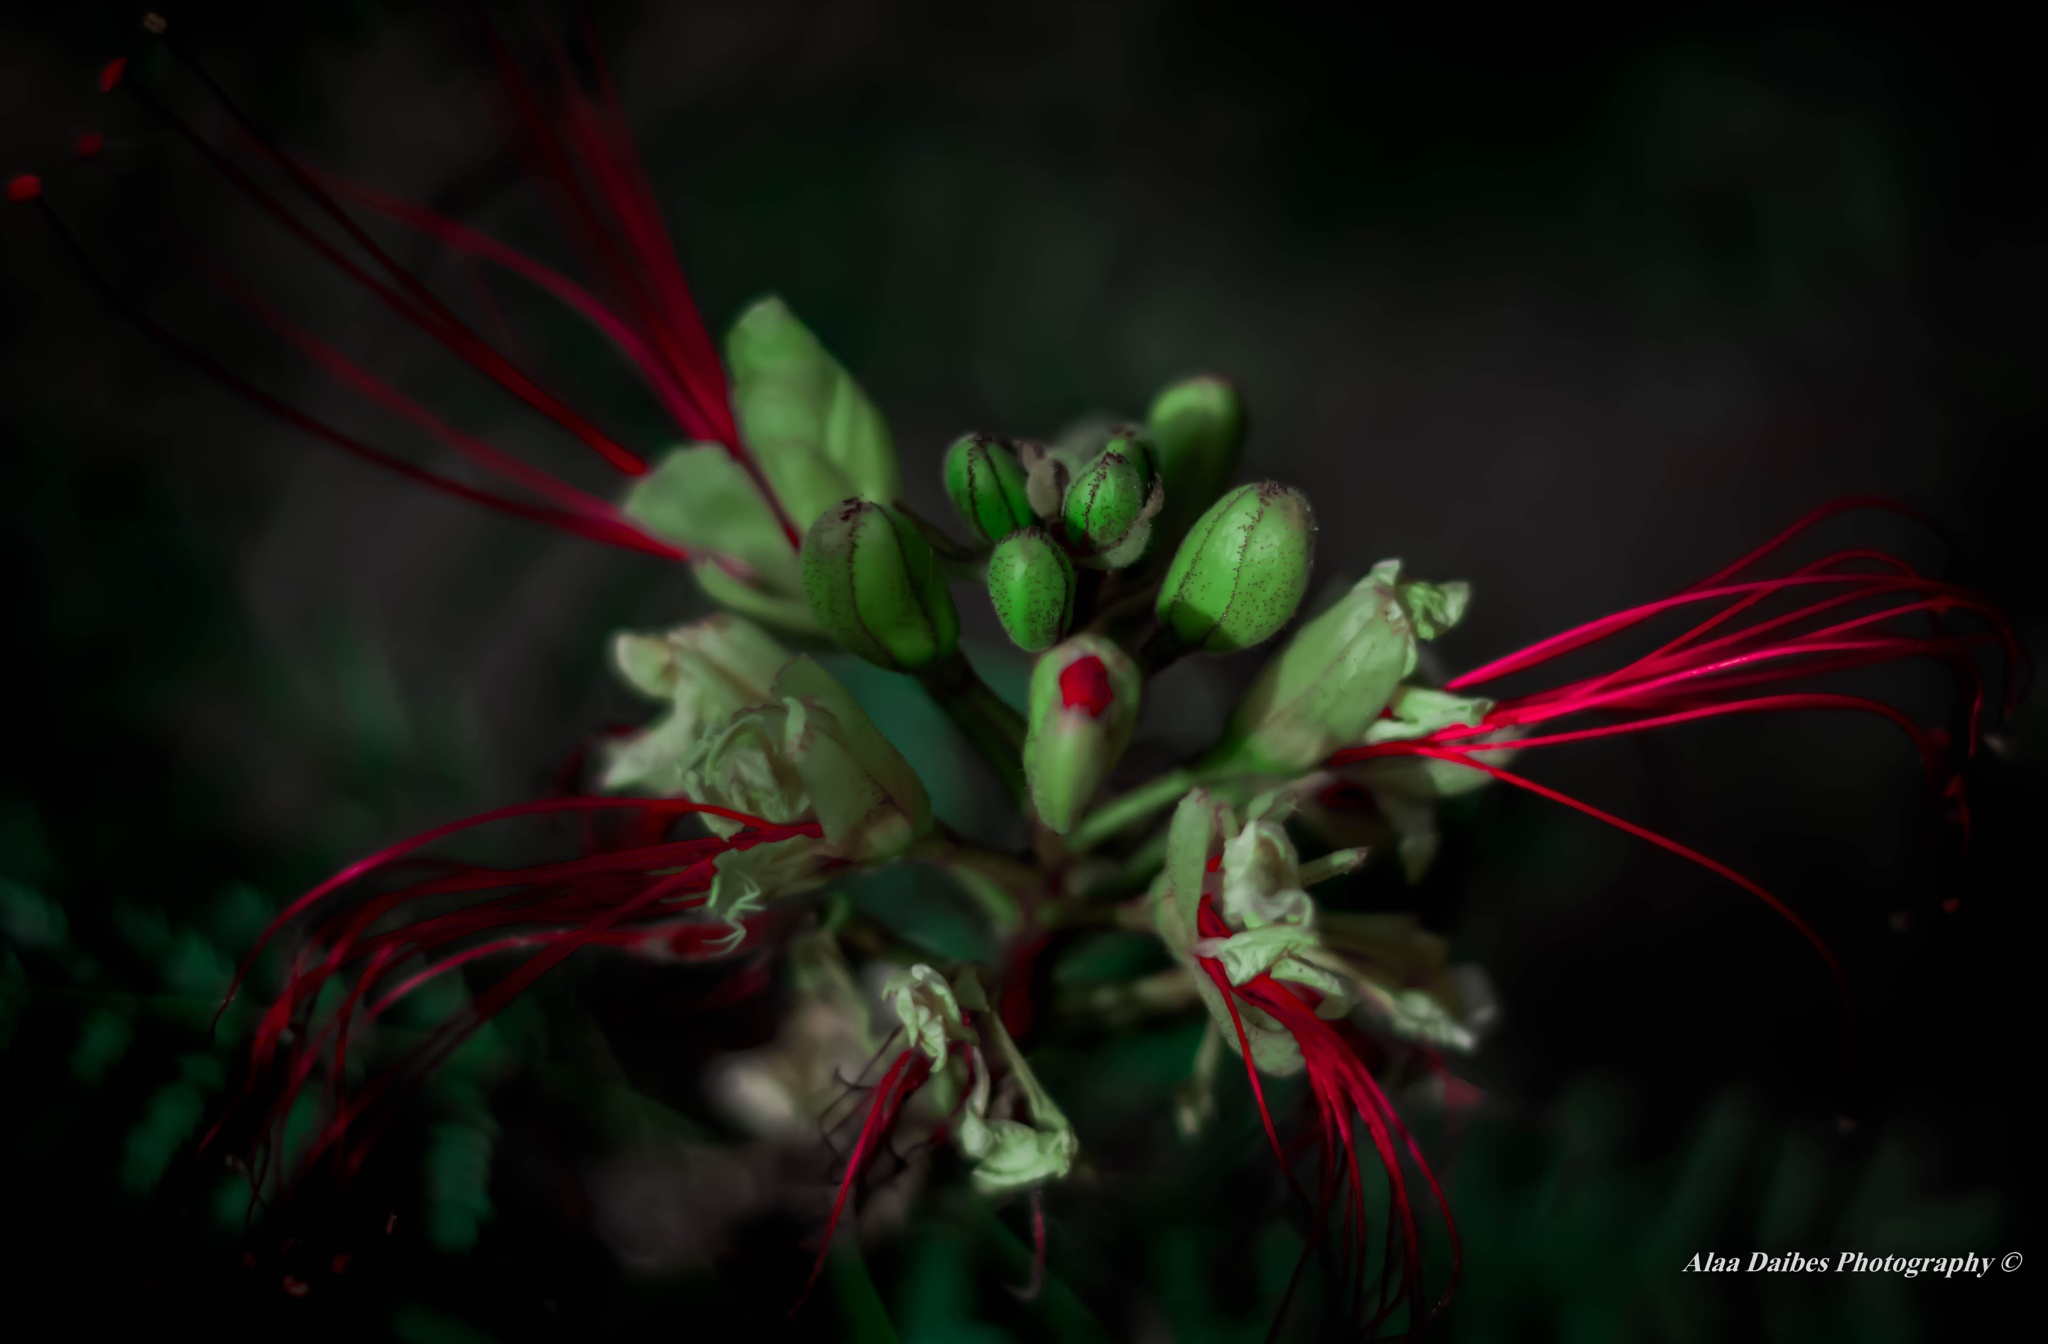 Magical Flower by Alaa